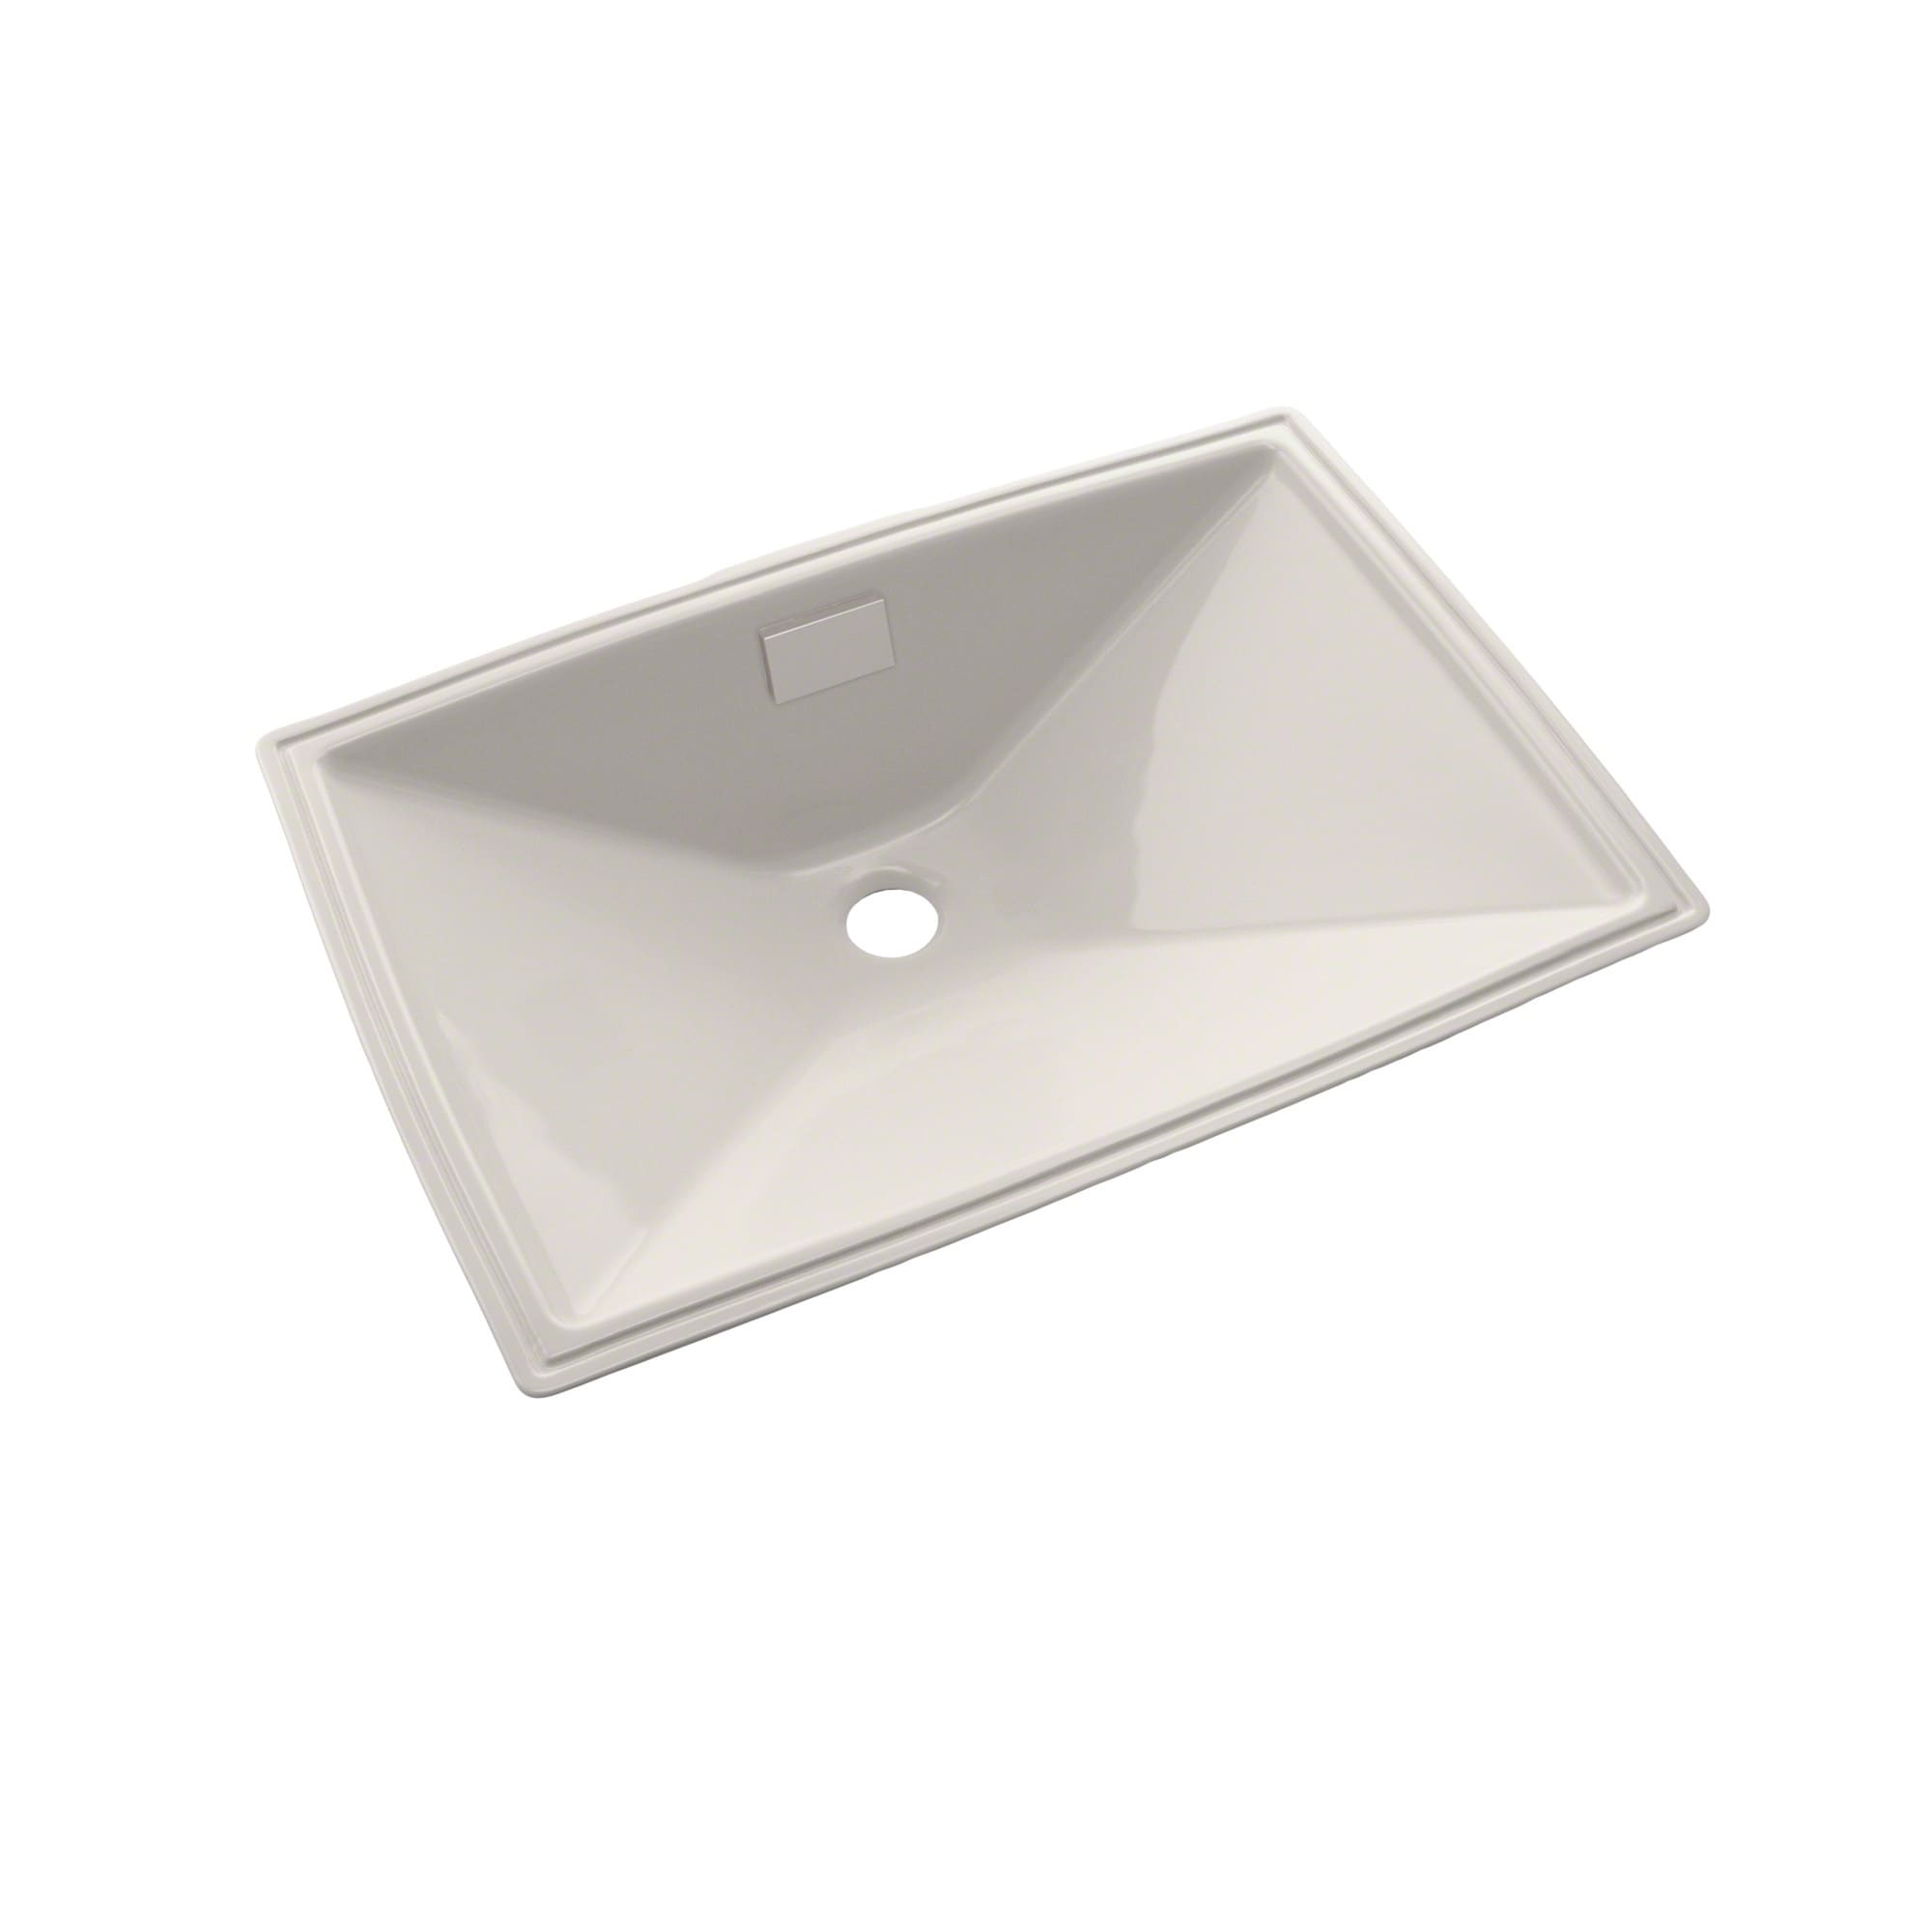 Shop Toto Lloyd Rectangular Undermount Bathroom Sink Colonial